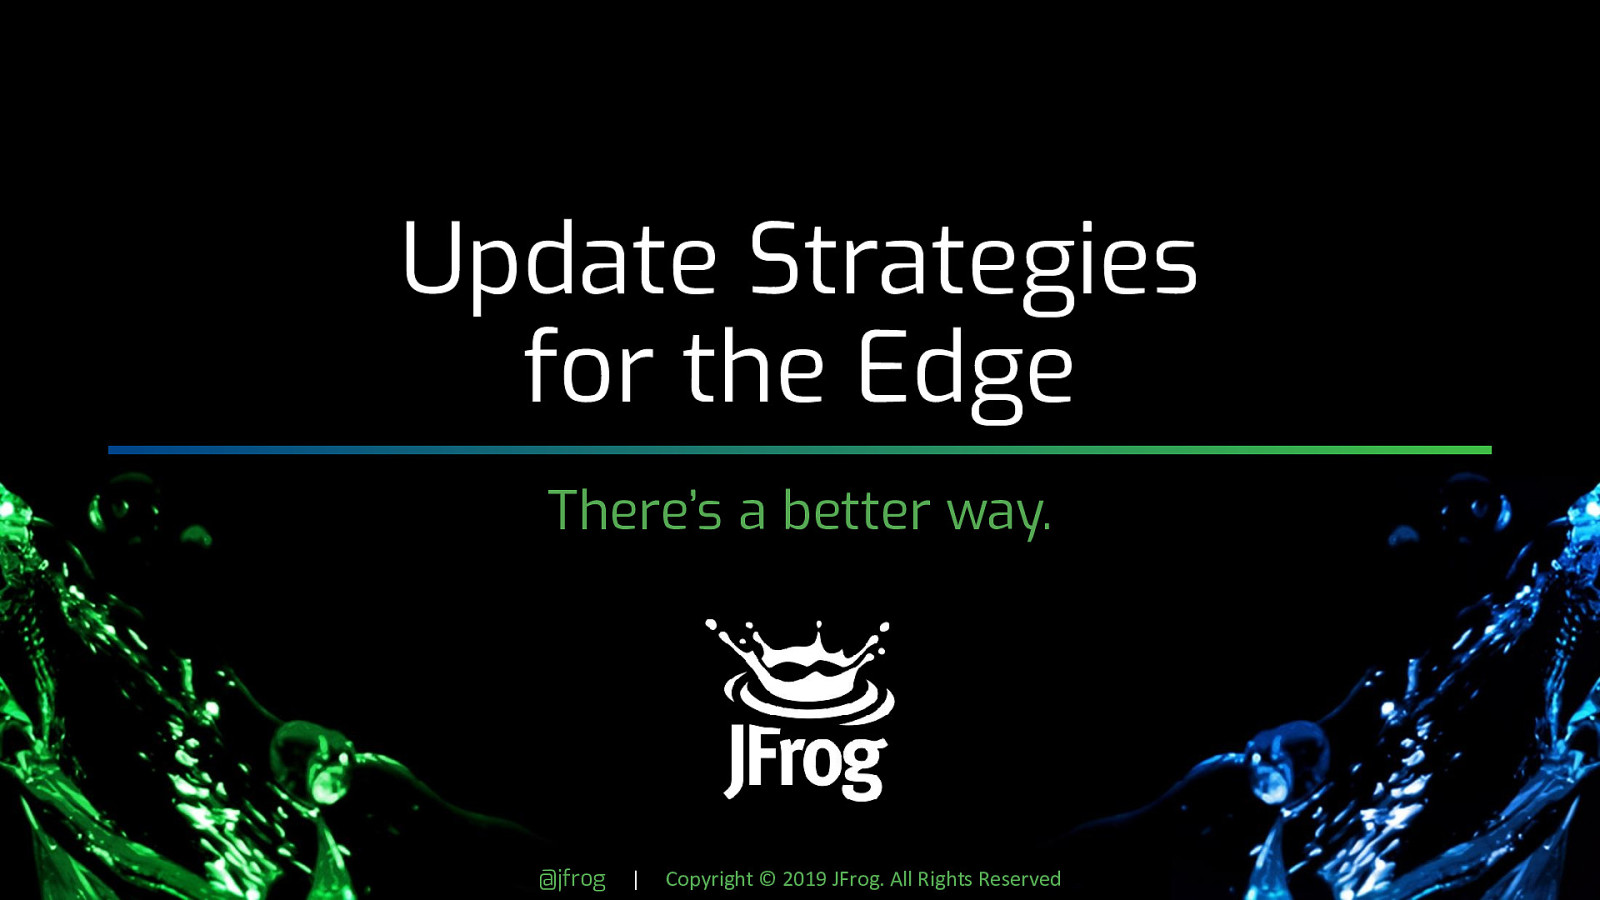 Updates for the Edge